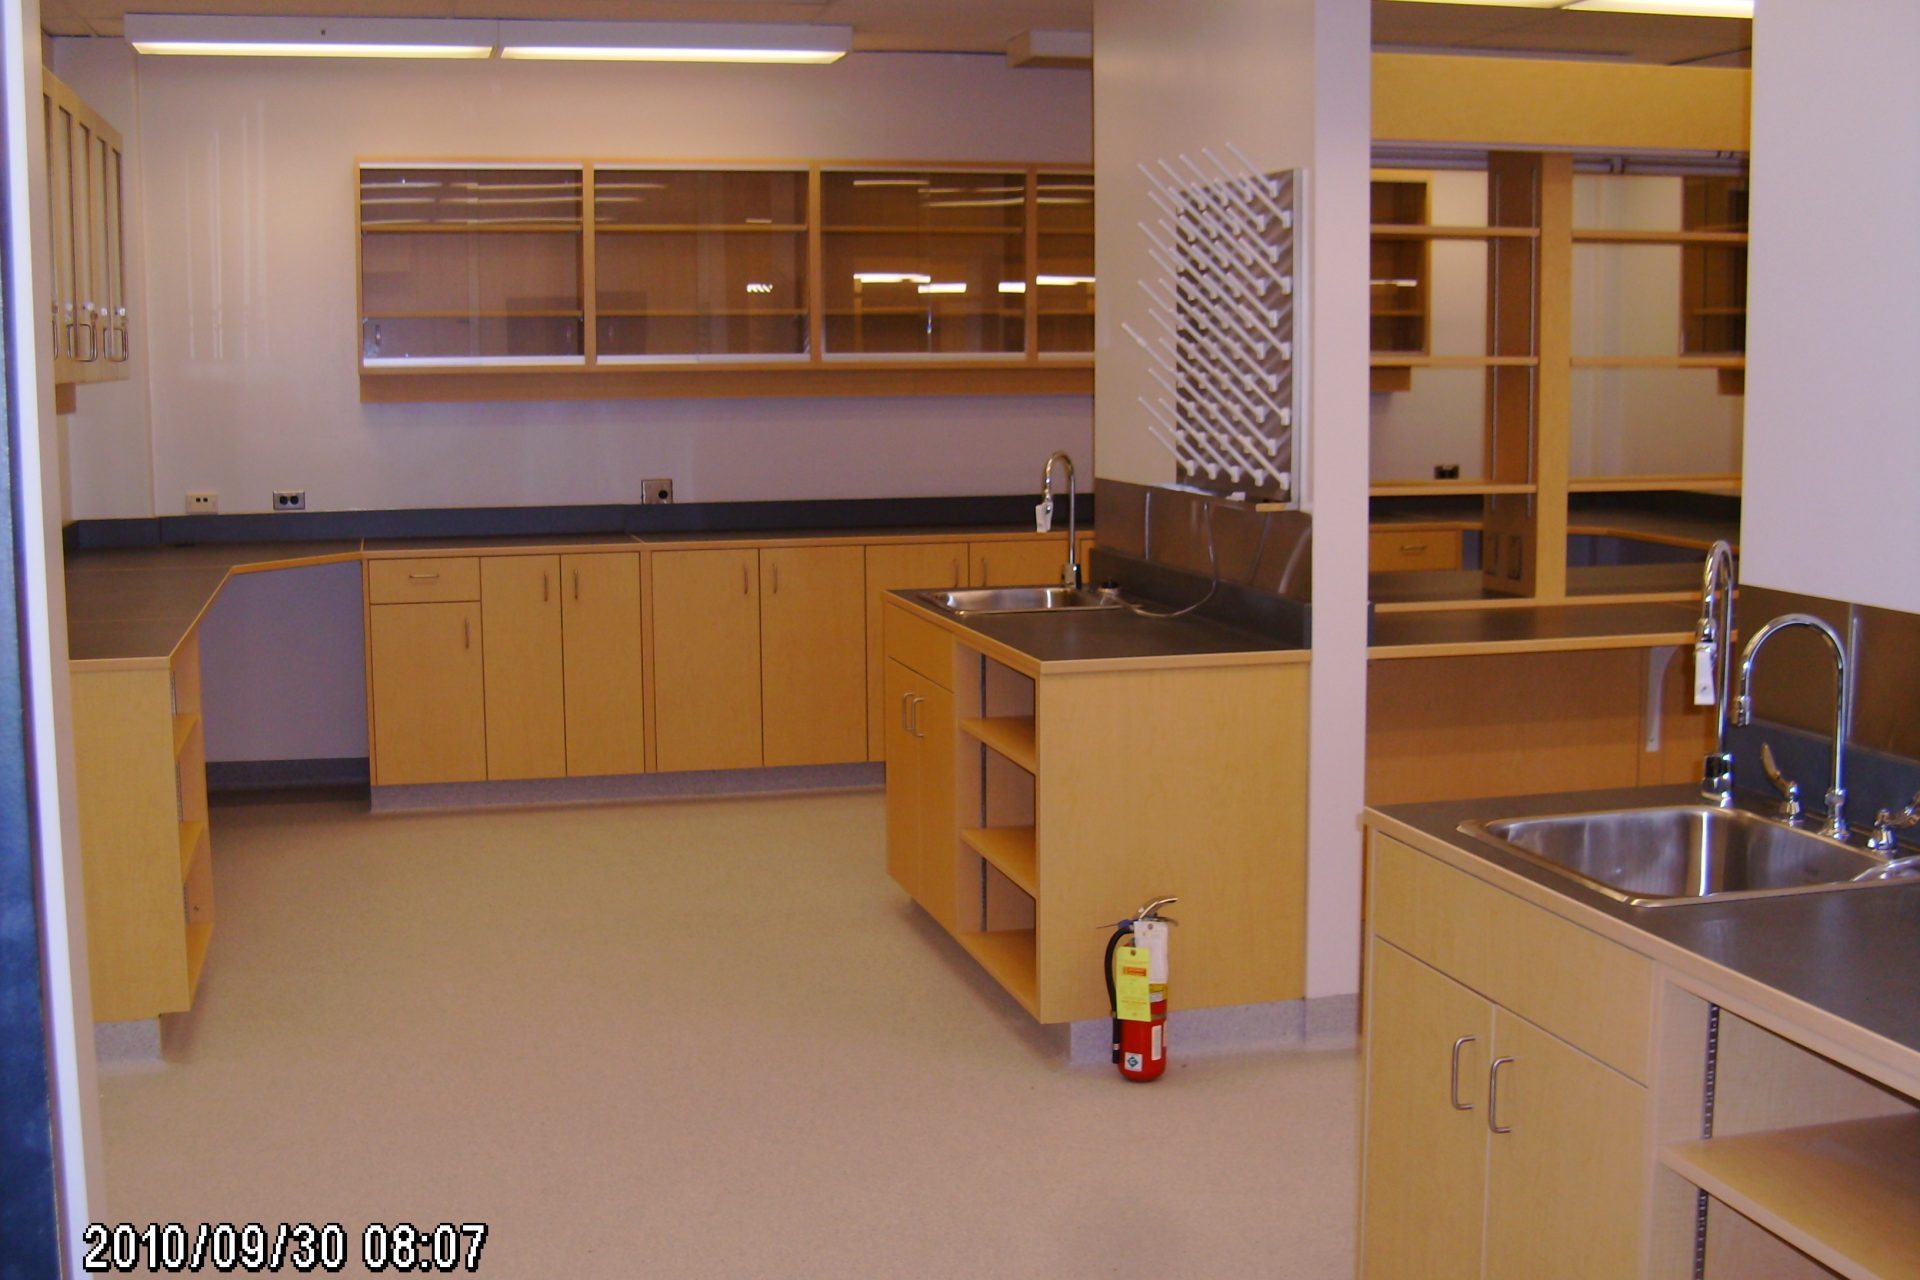 University of Manitoba Anatomy Lab 4